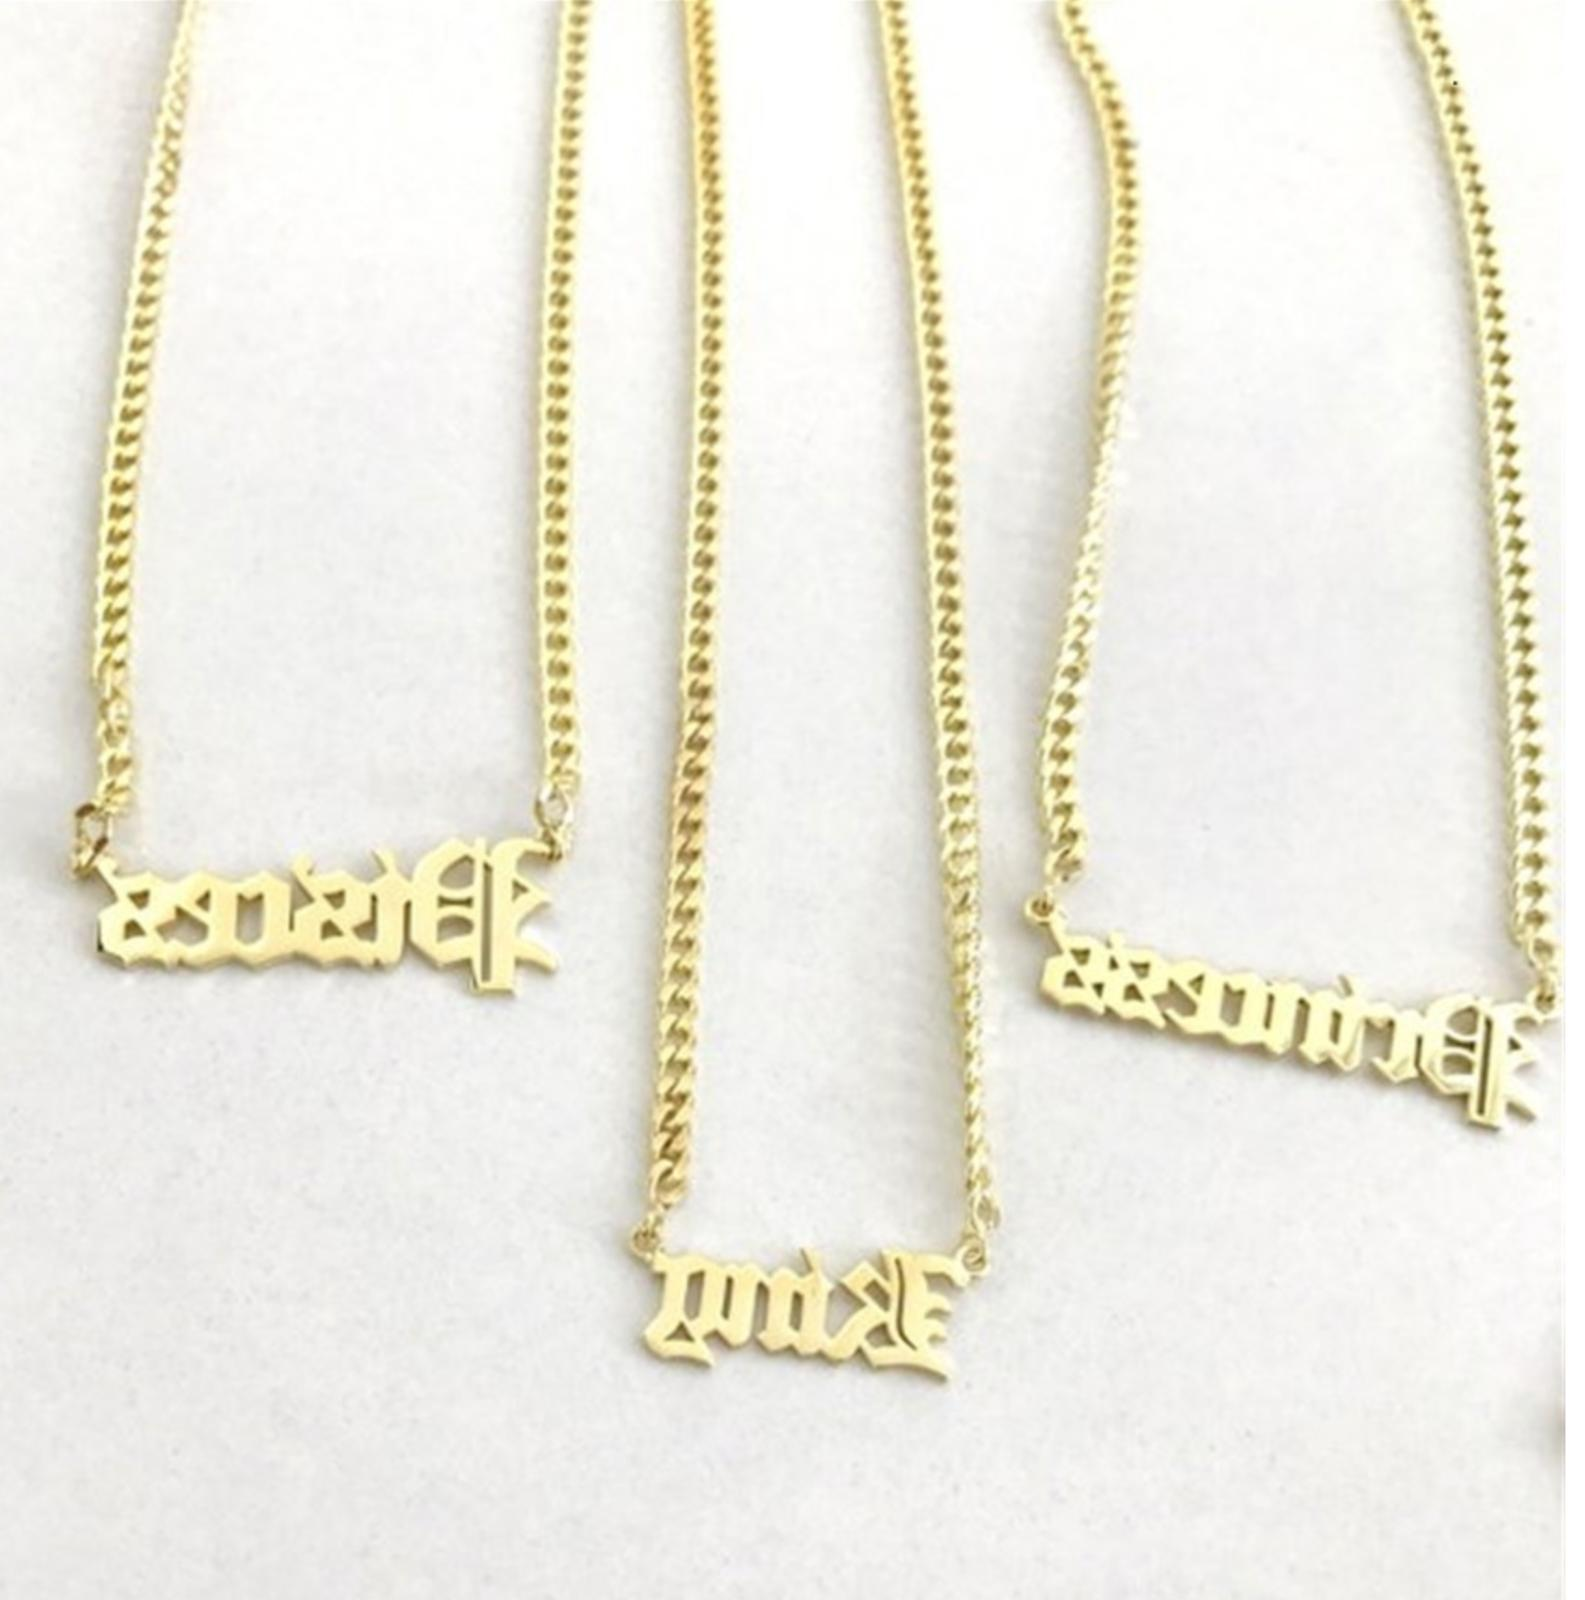 Personalized Name Chain Old Custom Gift